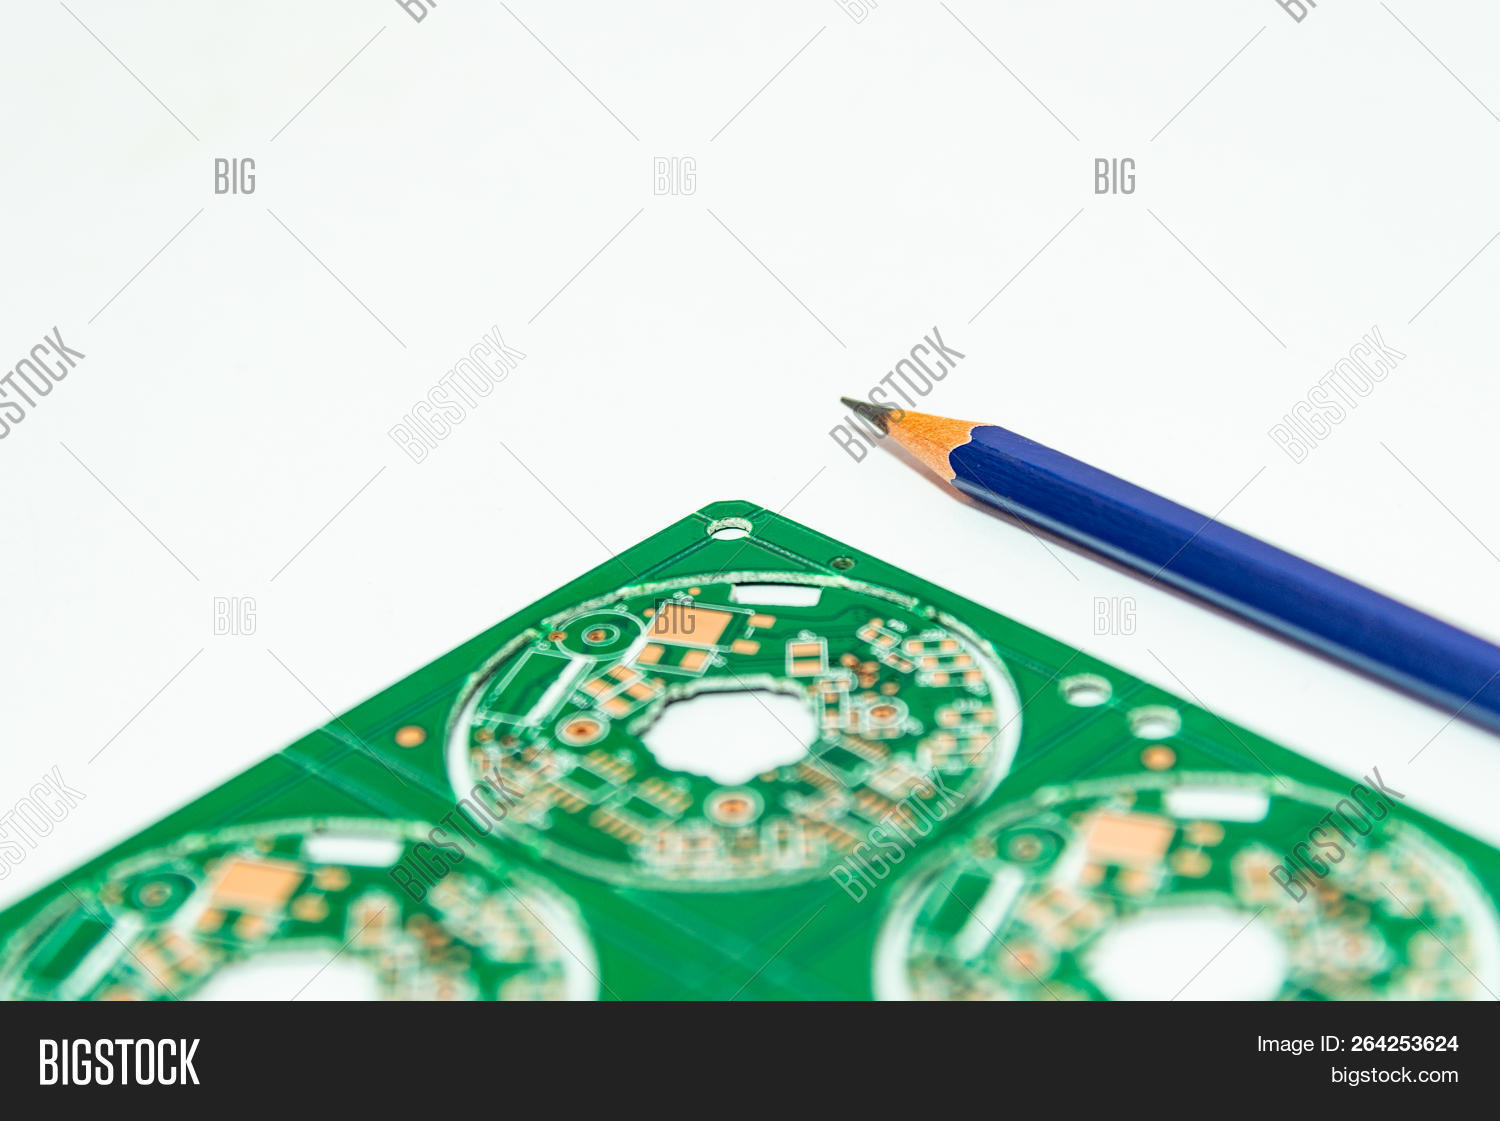 electronic product image \u0026 photo (free trial) bigstock